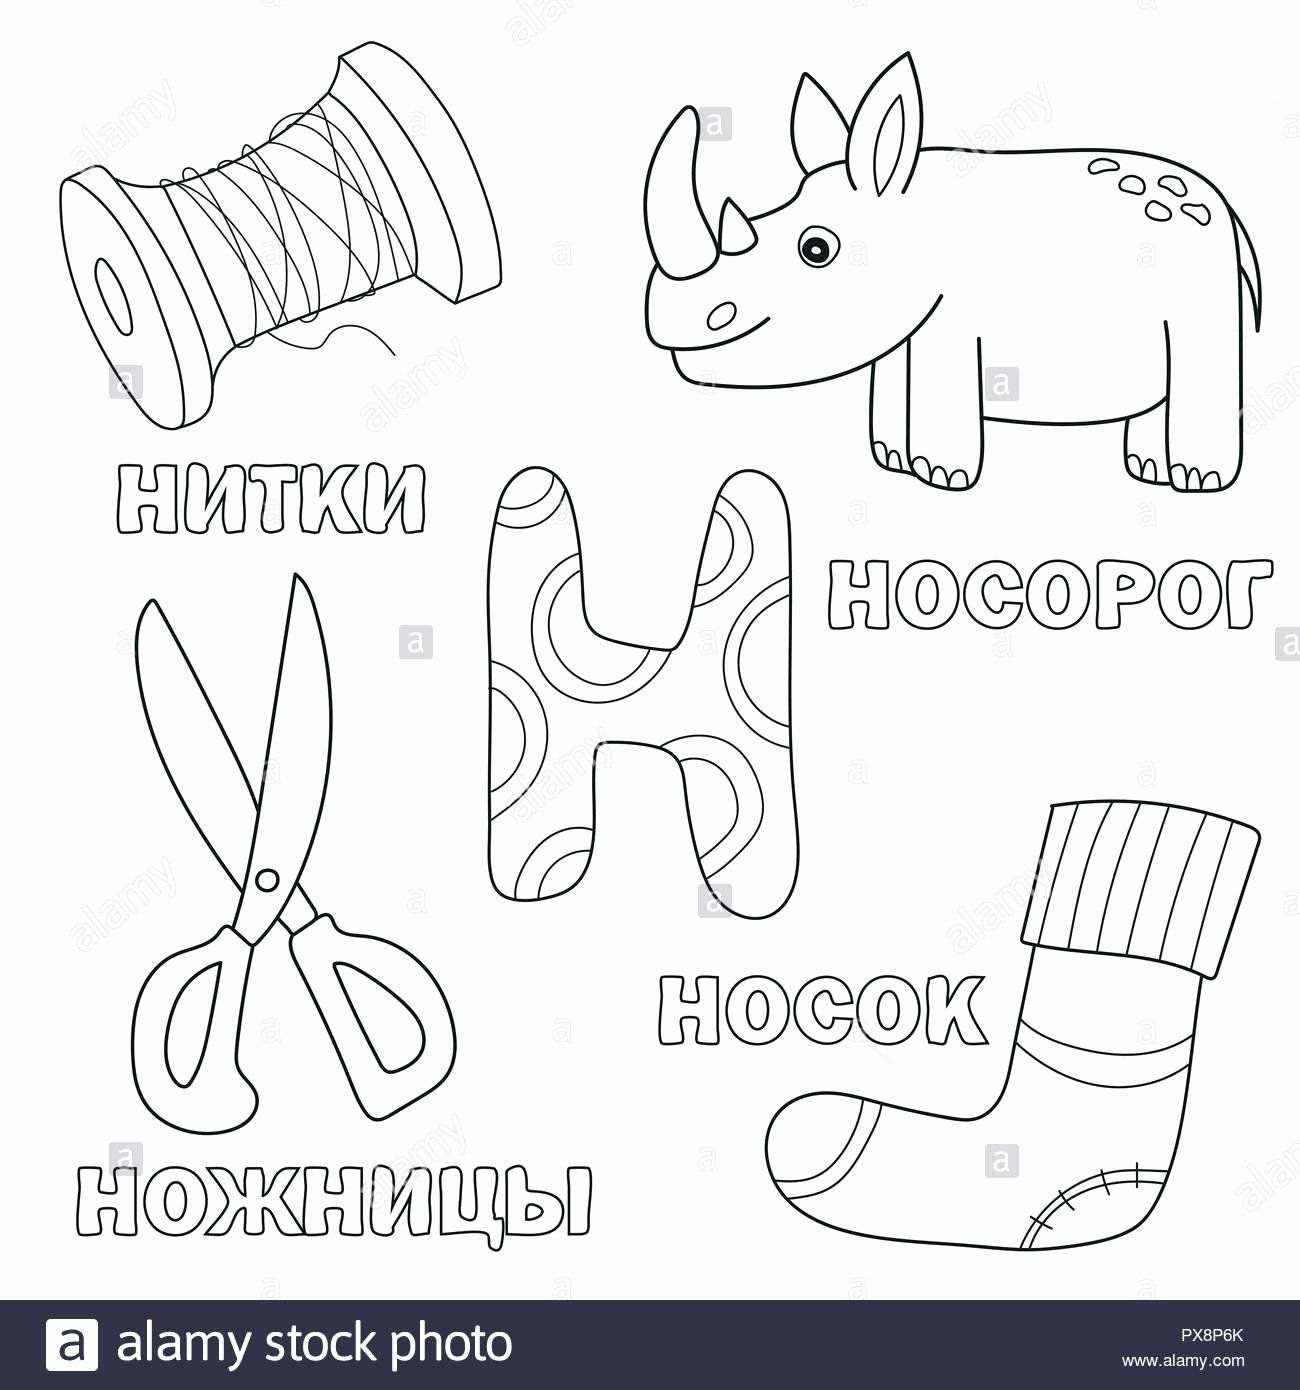 Coloring Small Alphabet Letters Beautiful Alphabet Letter With Russian N Pictures Of The Letter Alphabet Coloring Pages Lettering Alphabet Coloring Book Pages